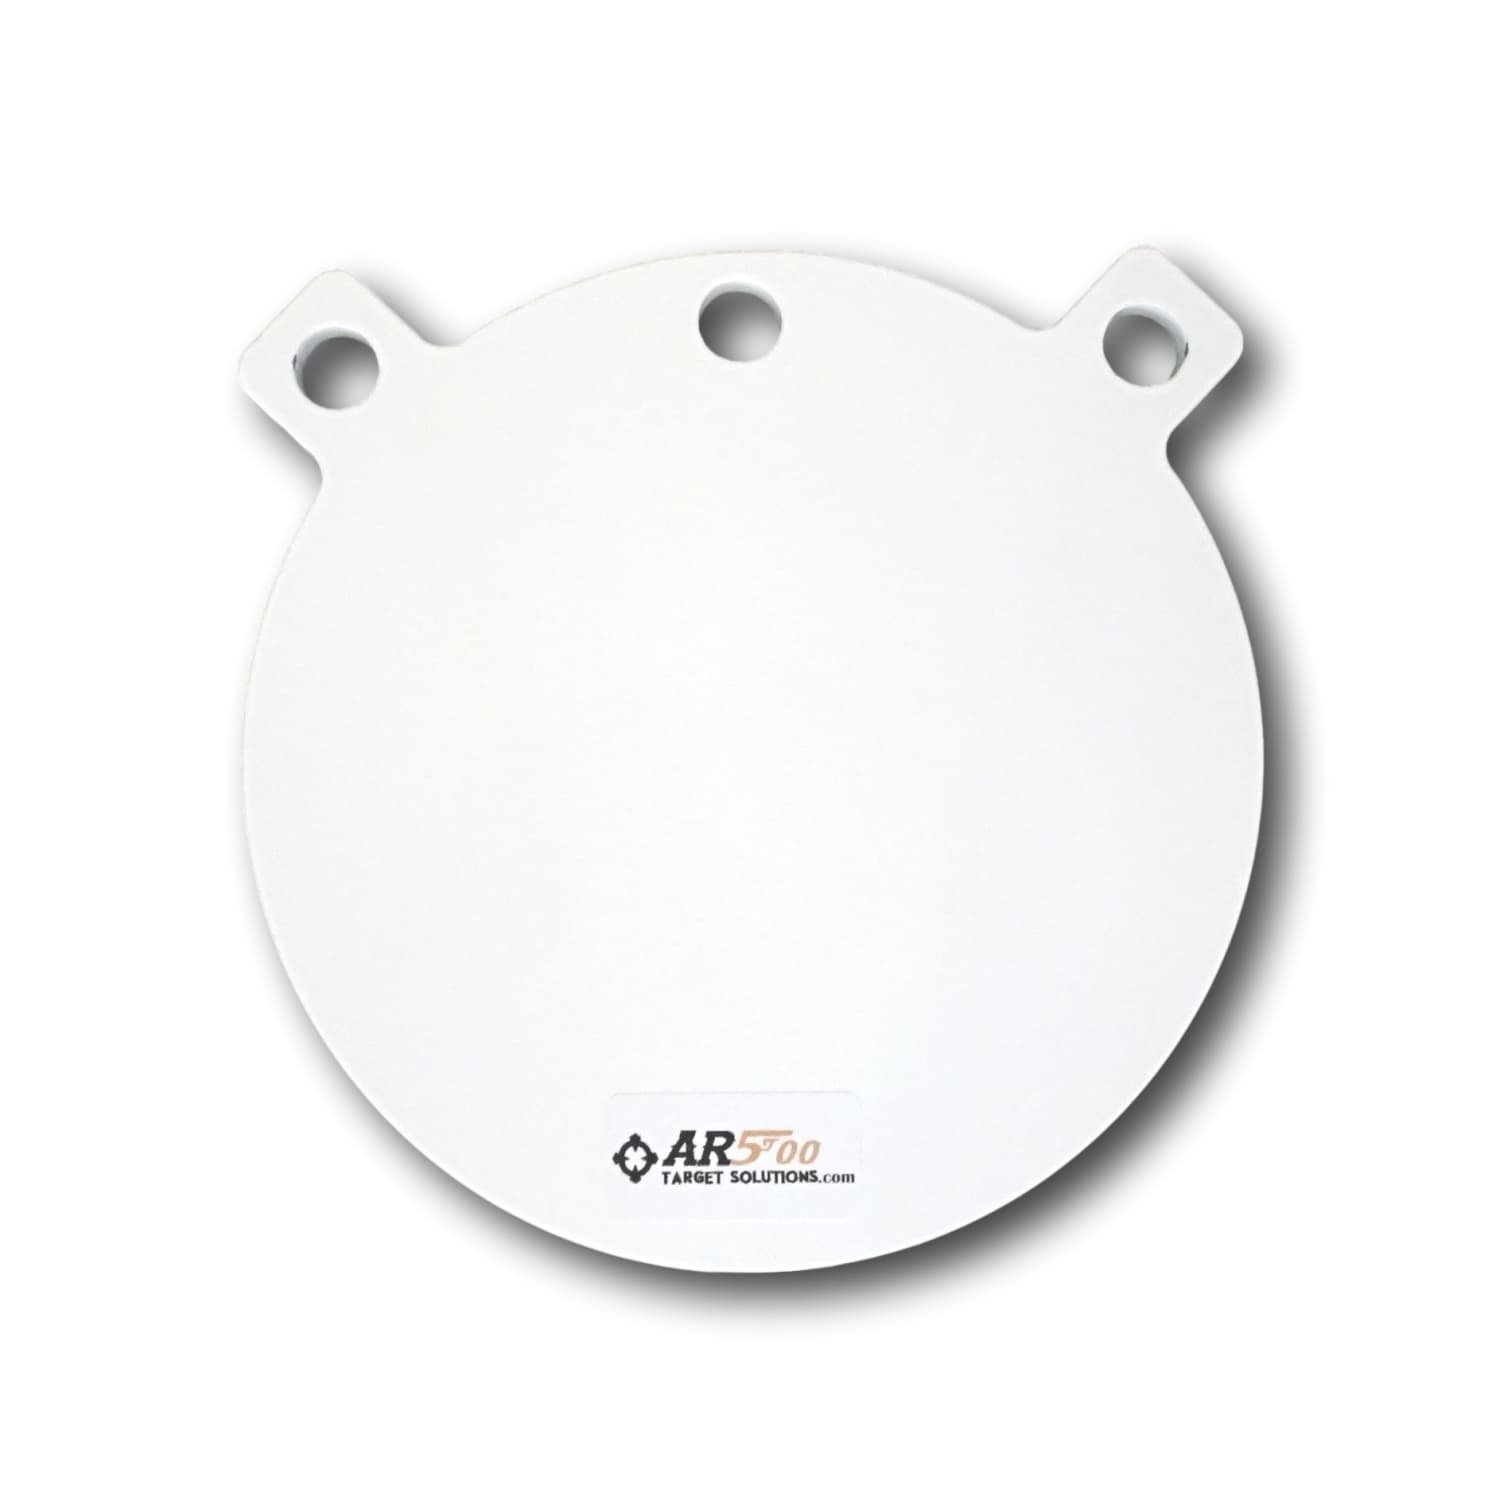 RANGETIME Targets- Quality 3/8, 1/2 Thick AR500 Steel Targets- Laser Cut Powder Coated Made in USA (8'', 3/8) by Ar500 Target Solutions